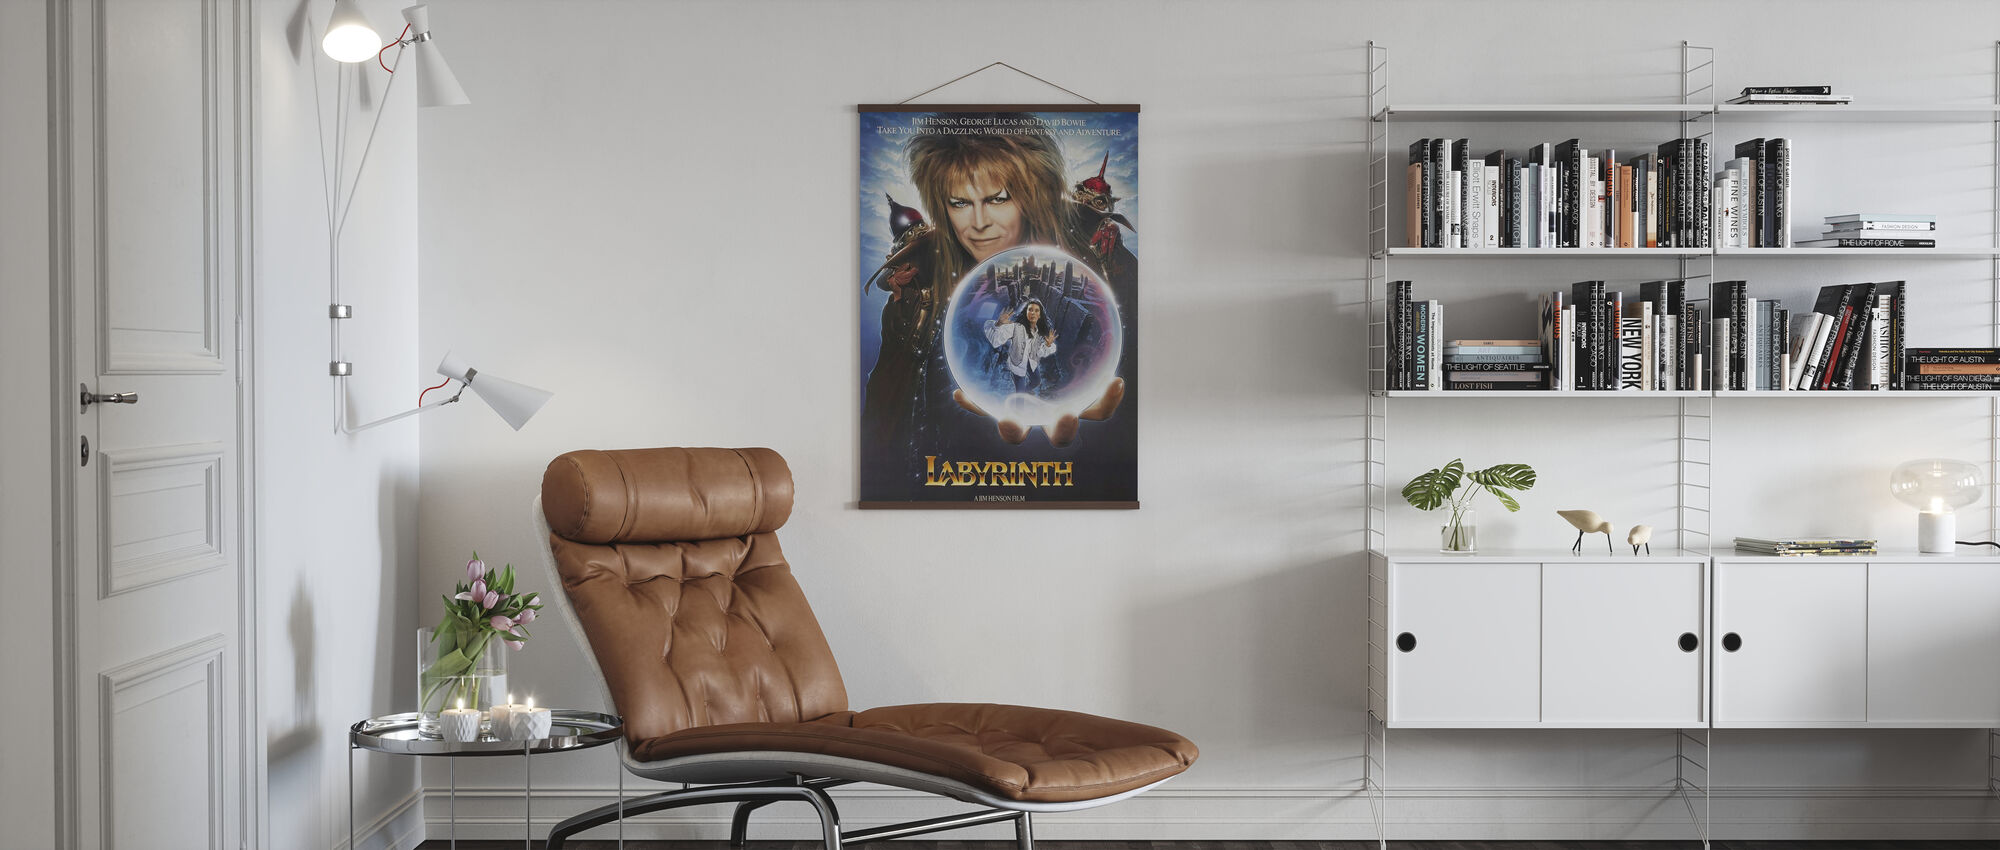 Labyrinth - Poster - Living Room